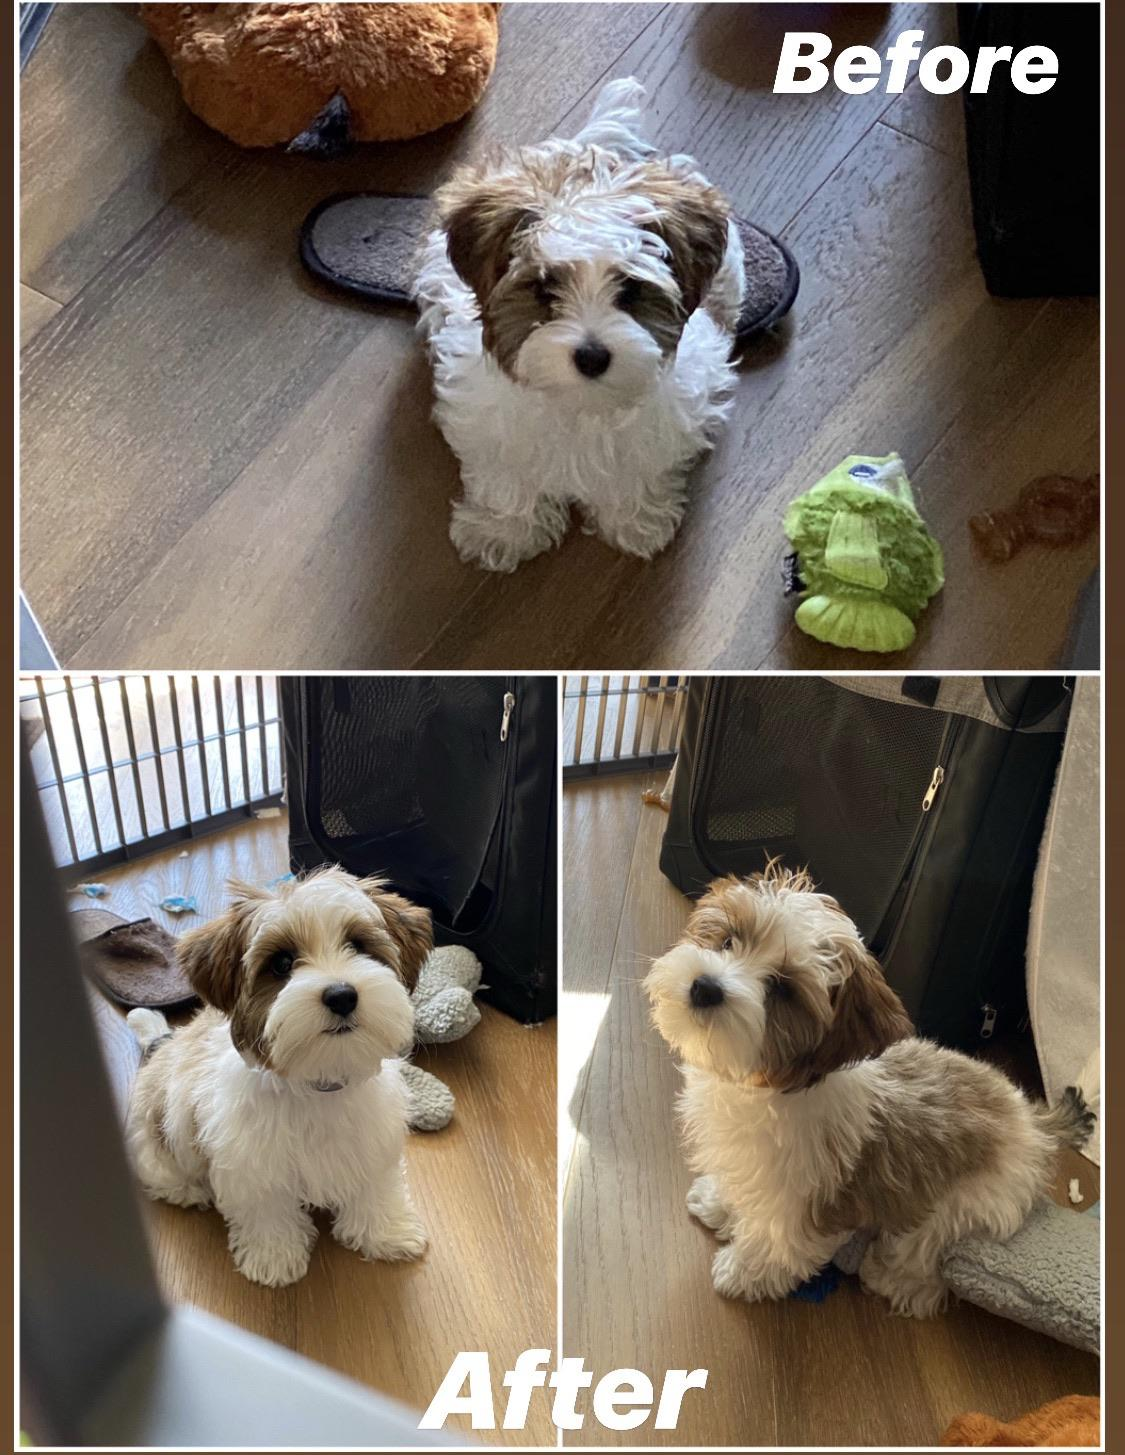 Yorkie Puppy Cut Vs Teddy Bear Cut : yorkie, puppy, teddy, Teddy, Haircut, Biewer., First, Grooming, Yorkies